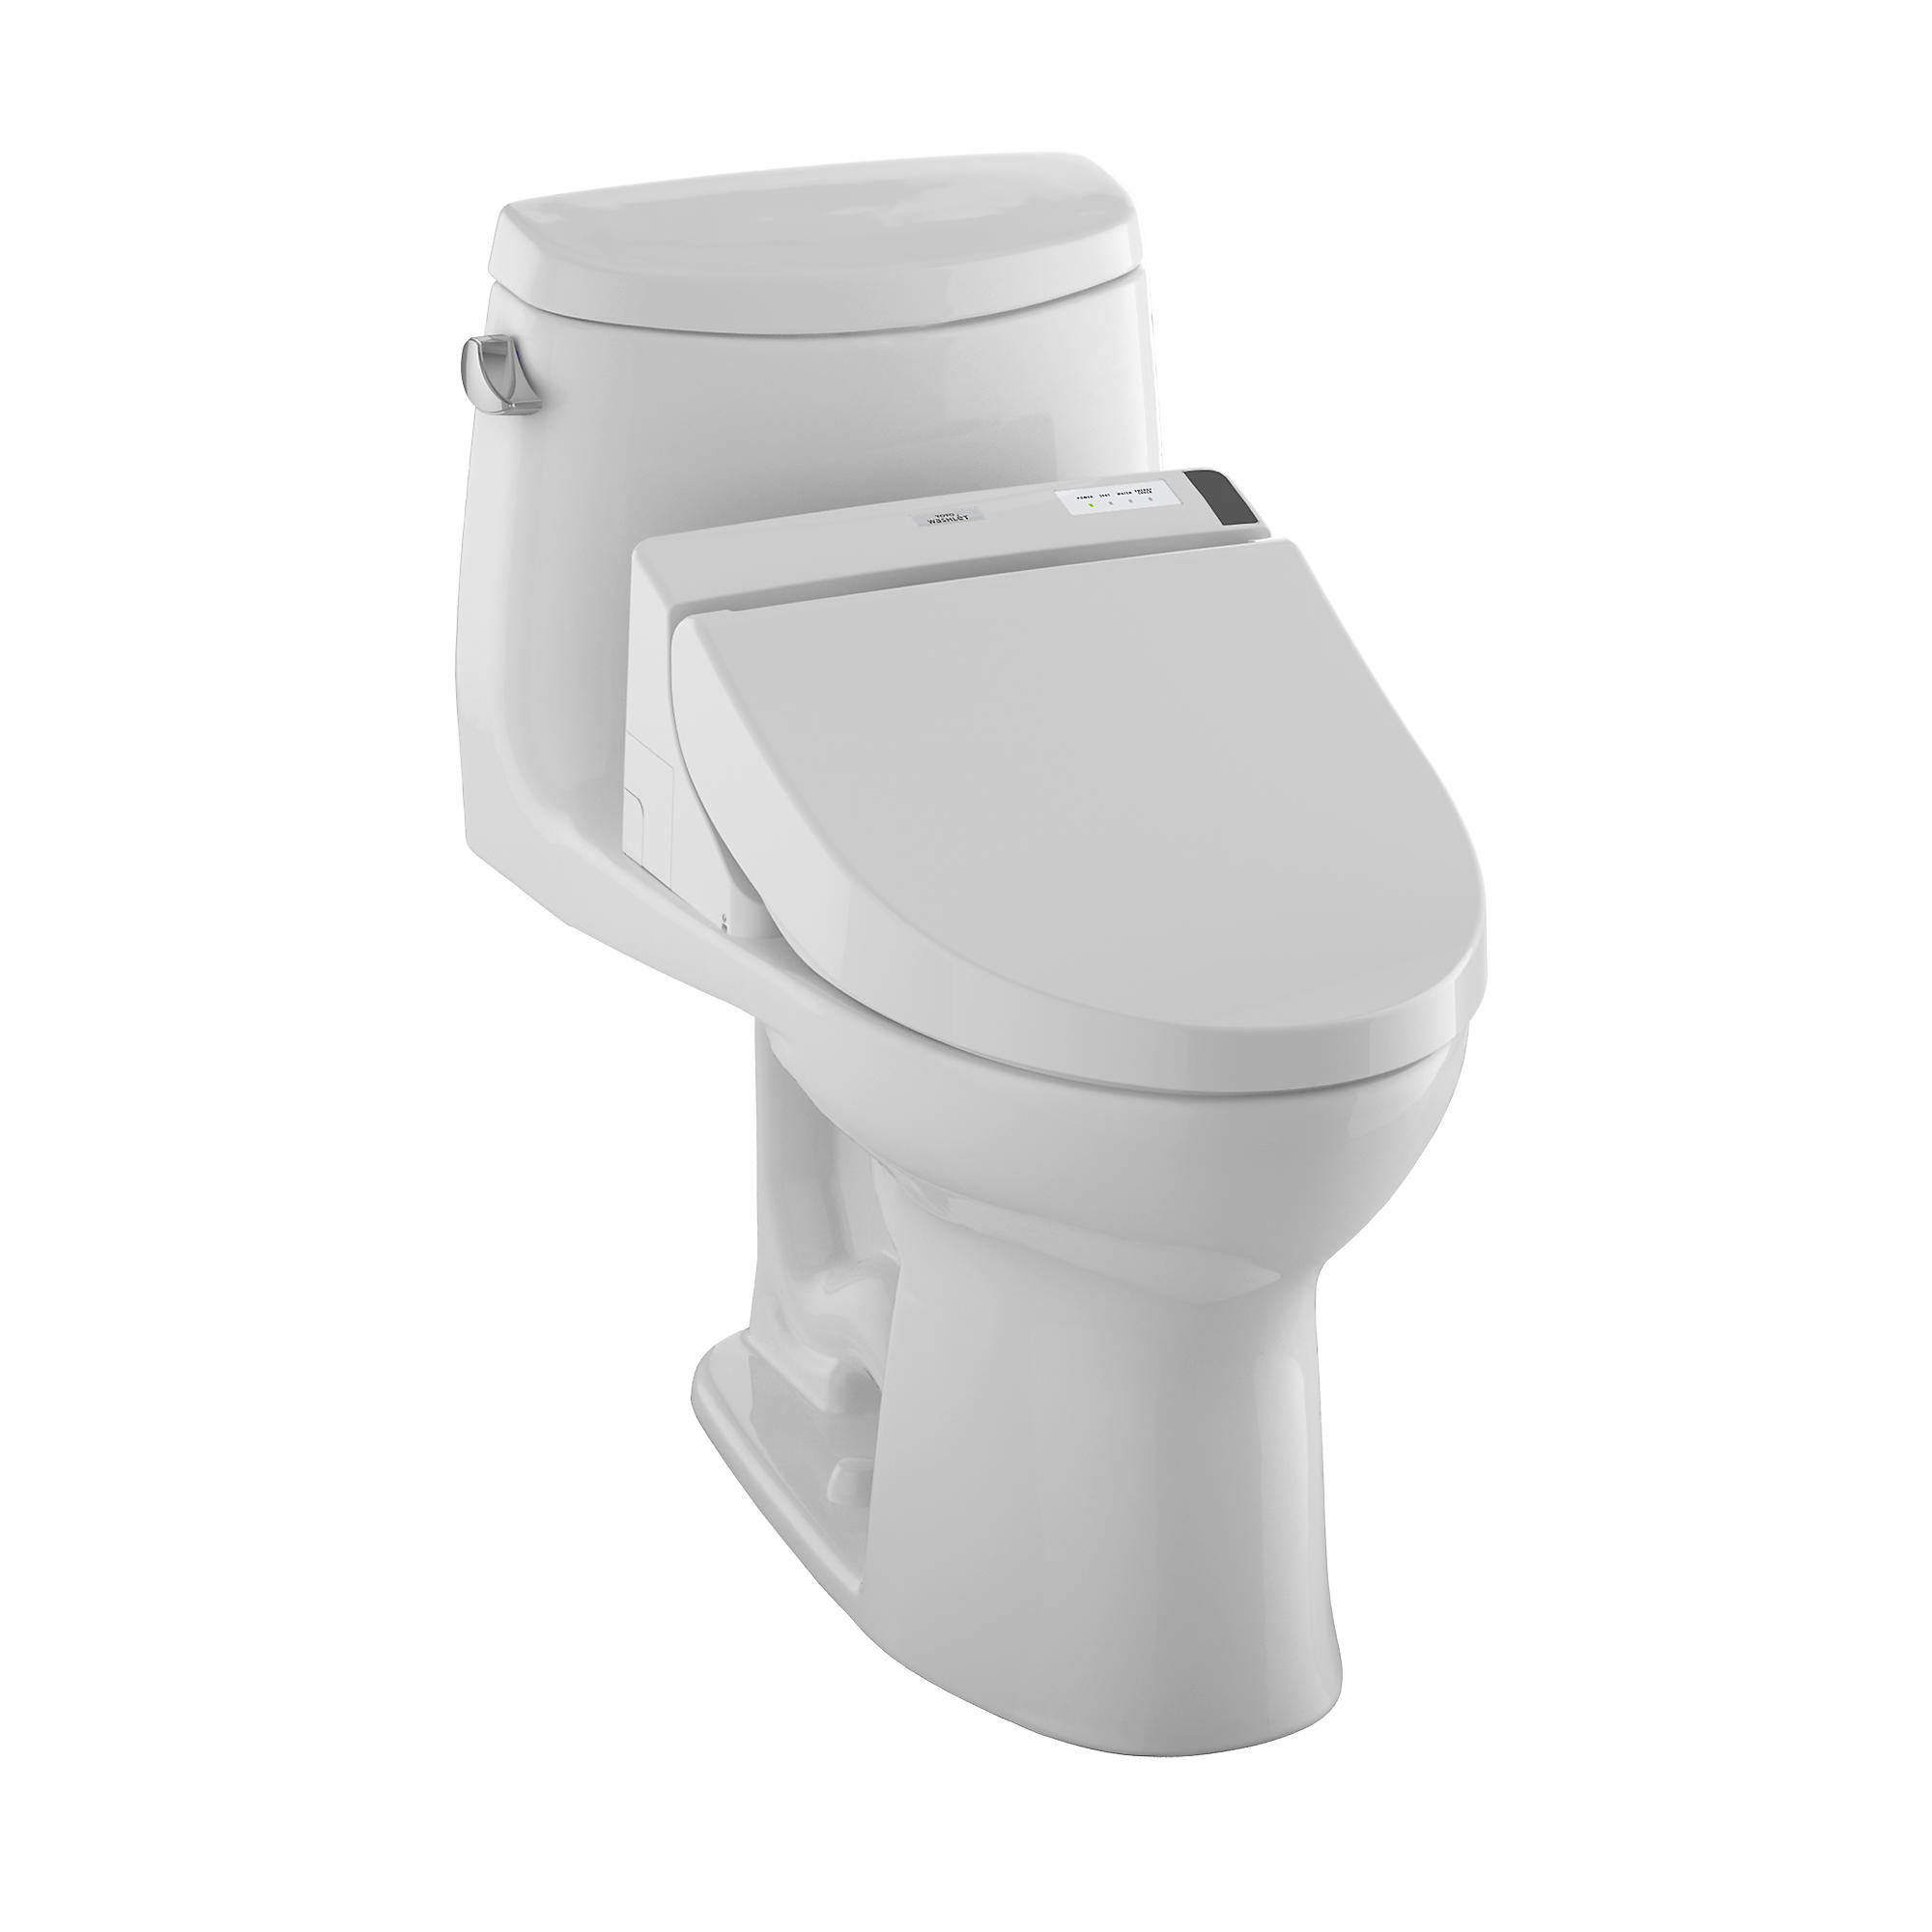 Mw6042044cefg 01 ultramax ii connect   c200 one piece toilet   1 28 gpf 0